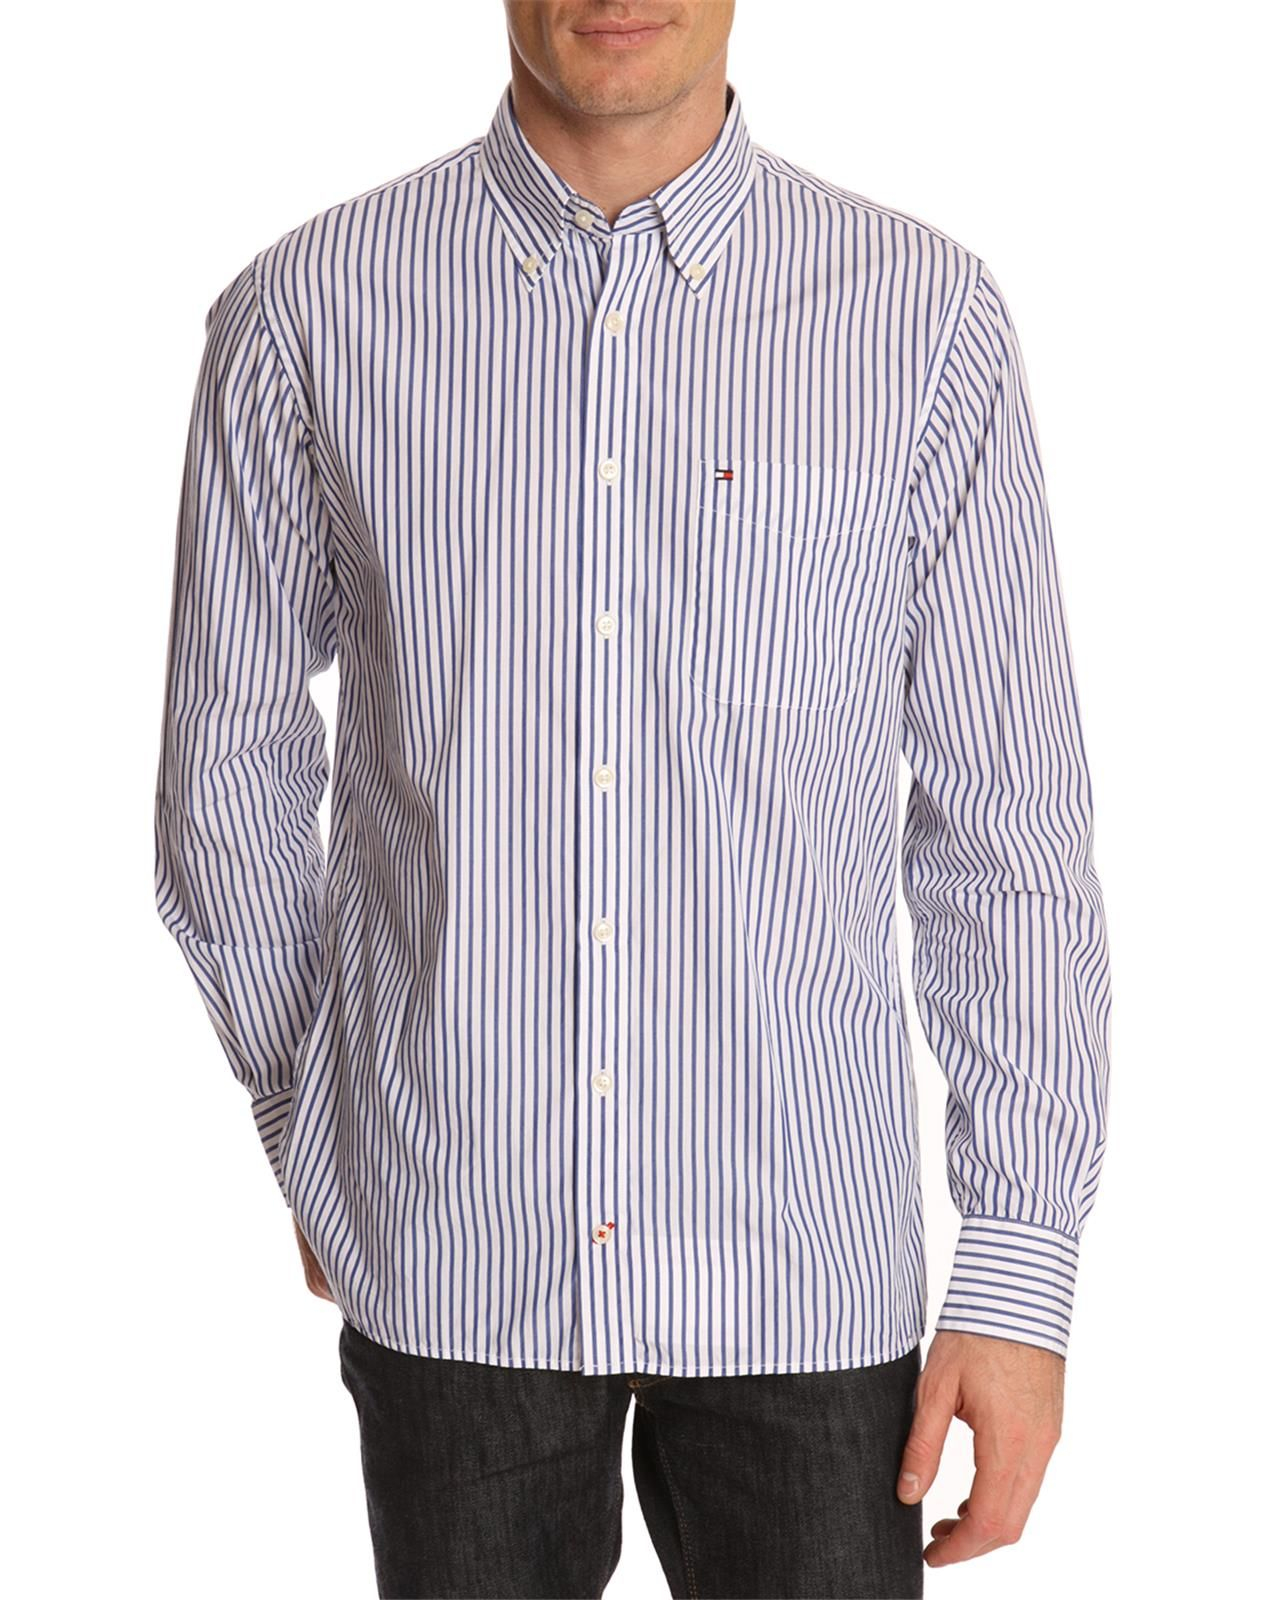 Tommy hilfiger nate blue and white striped shirt in blue for Tommy hilfiger fitzgerald striped shirt